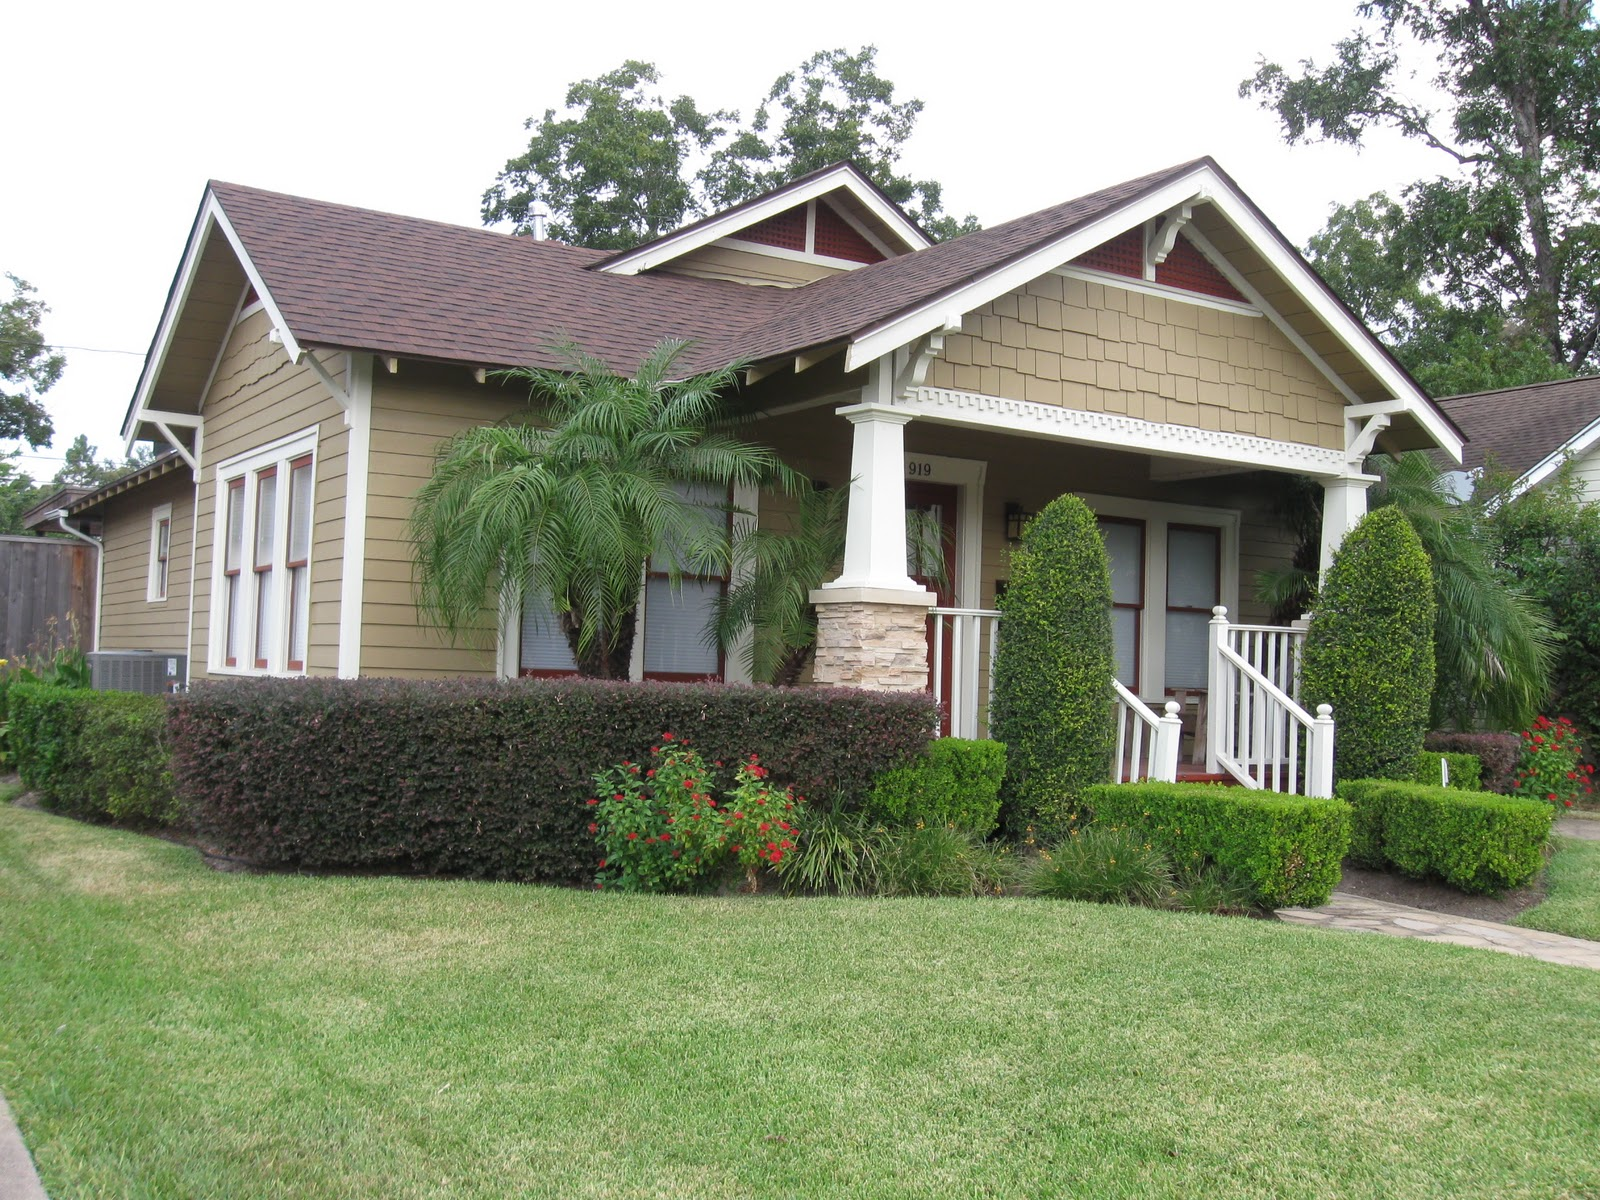 Cottage Style Homes American Bungalow Style Homes Picture